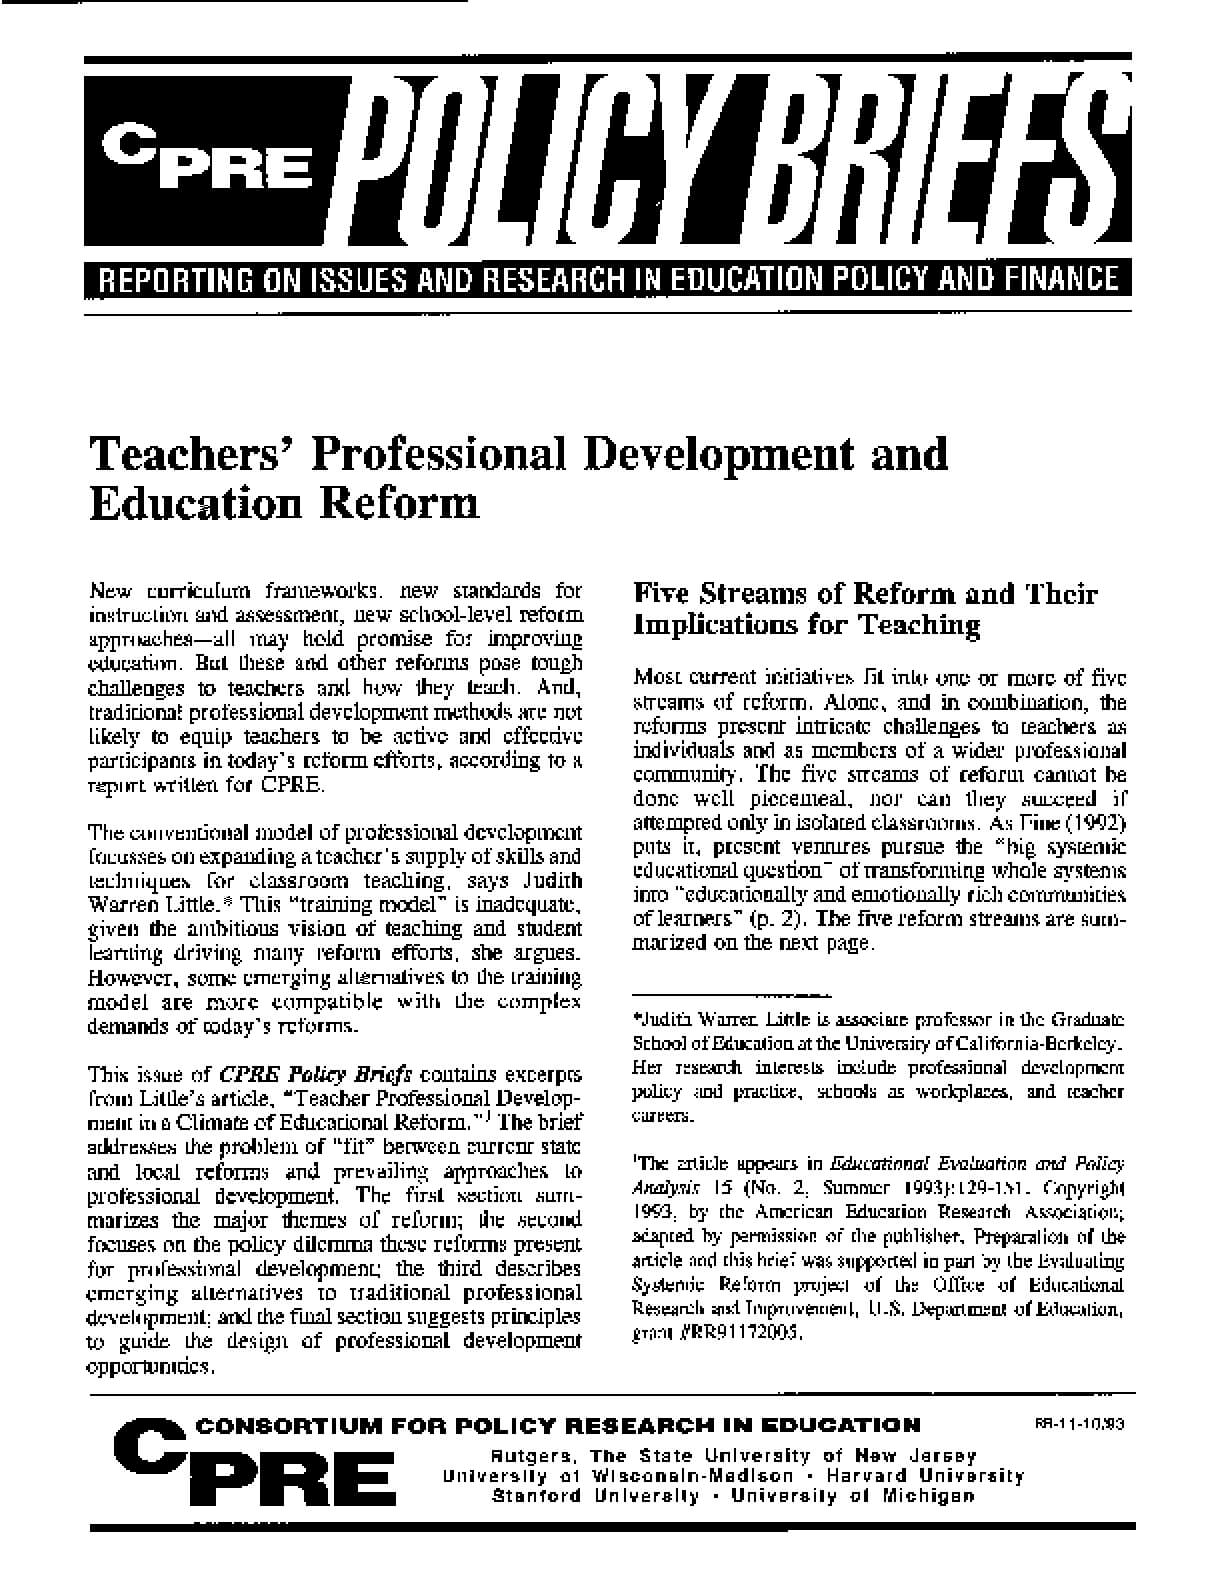 Teachers' Professional Development and Education Reform